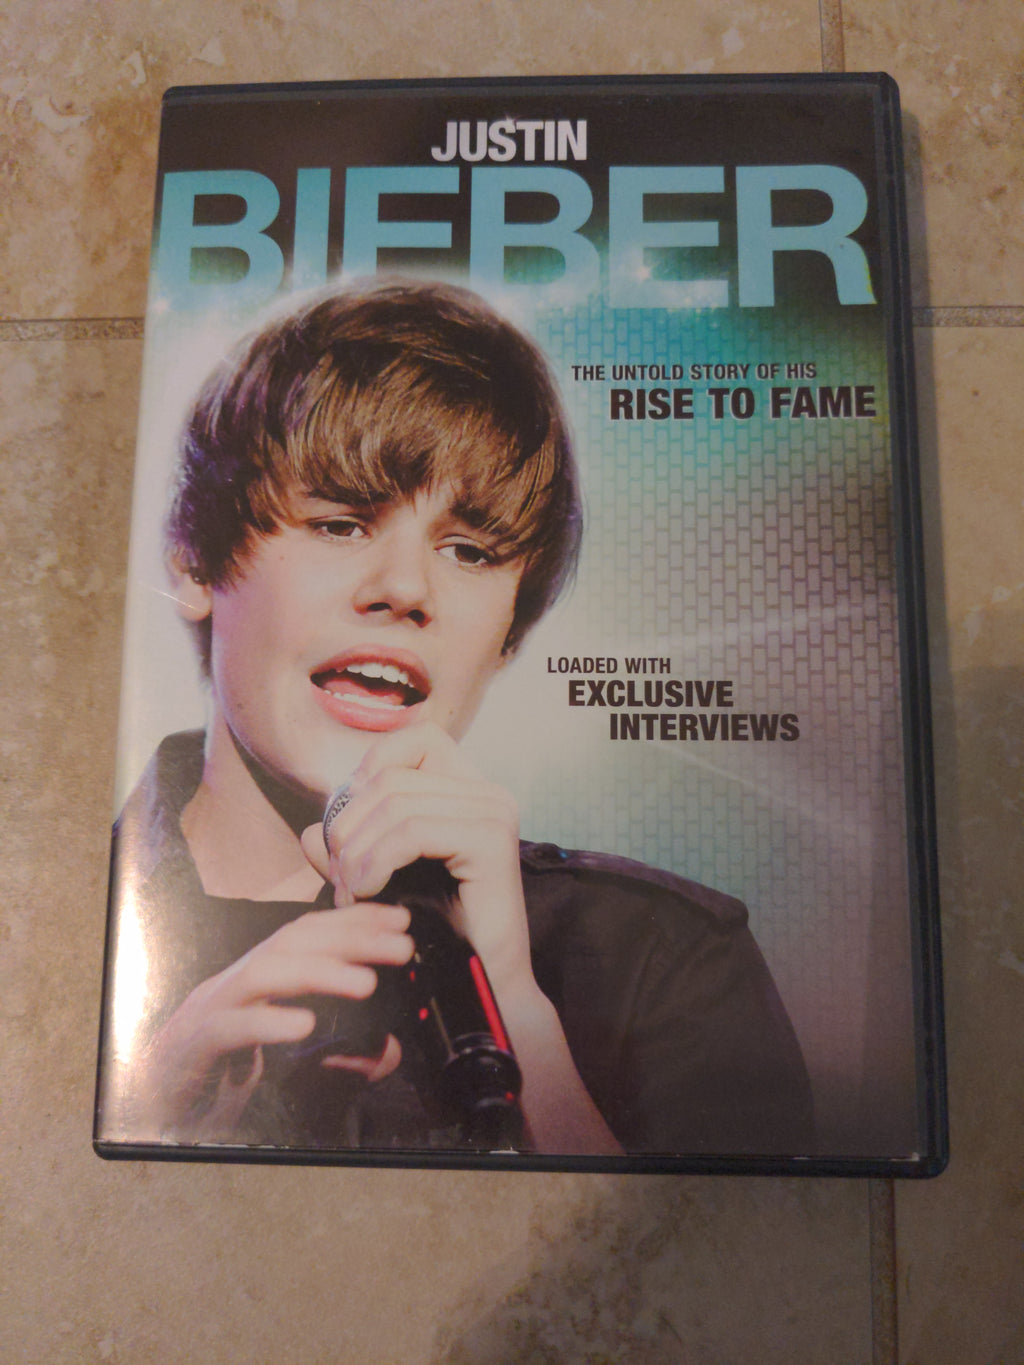 Justin Bieber Untold Story of his Rise To Fame DVD 2011